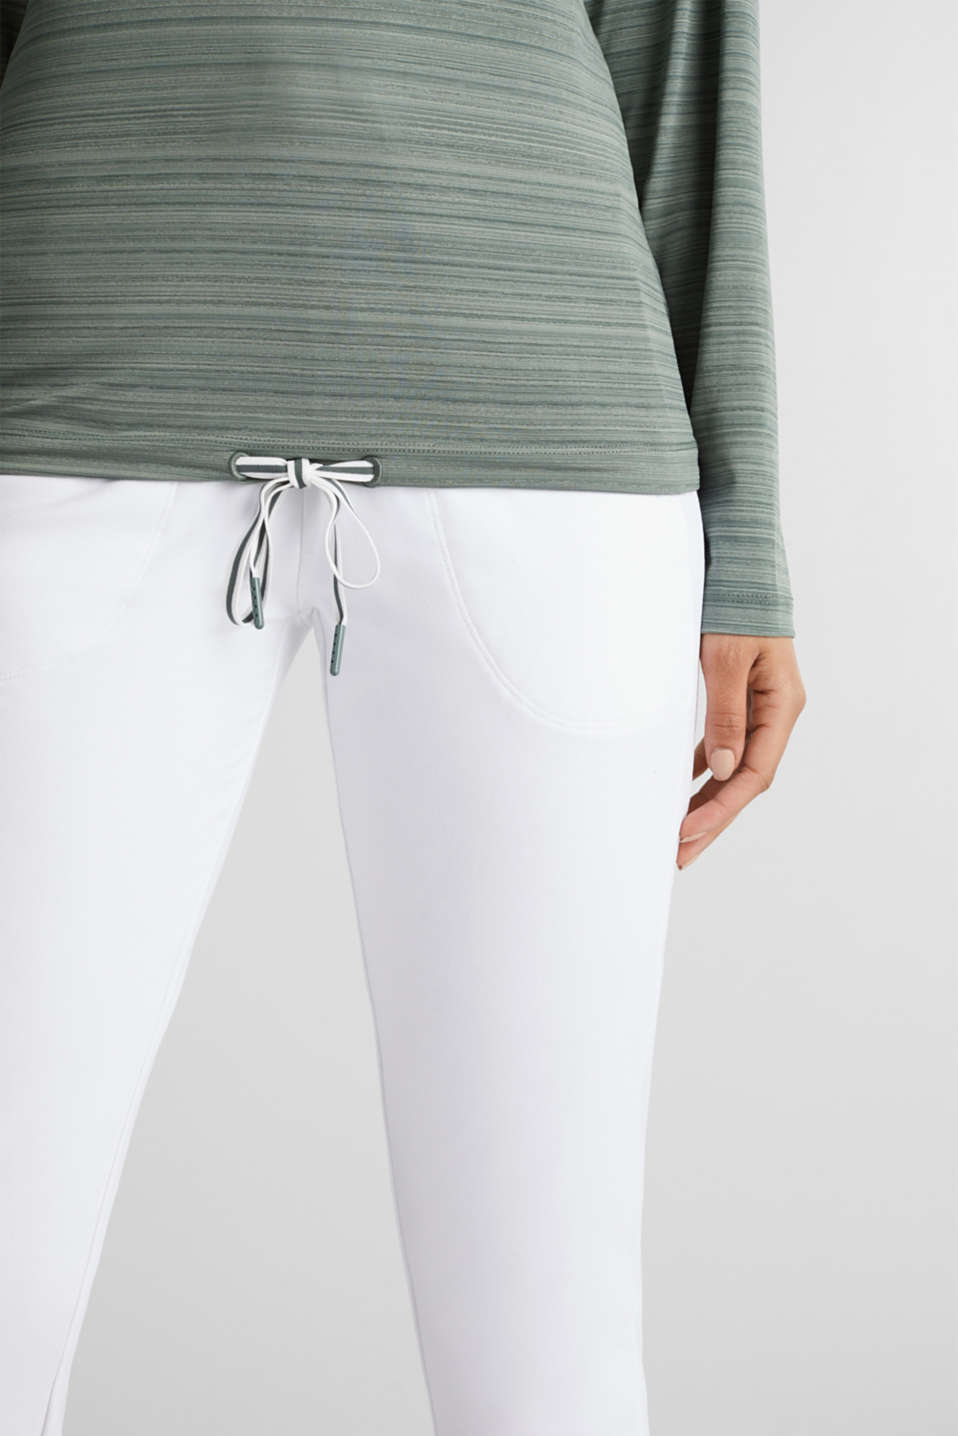 Active long sleeve top with a drawstring, E-DRY, LIGHT KHAKI, detail image number 2